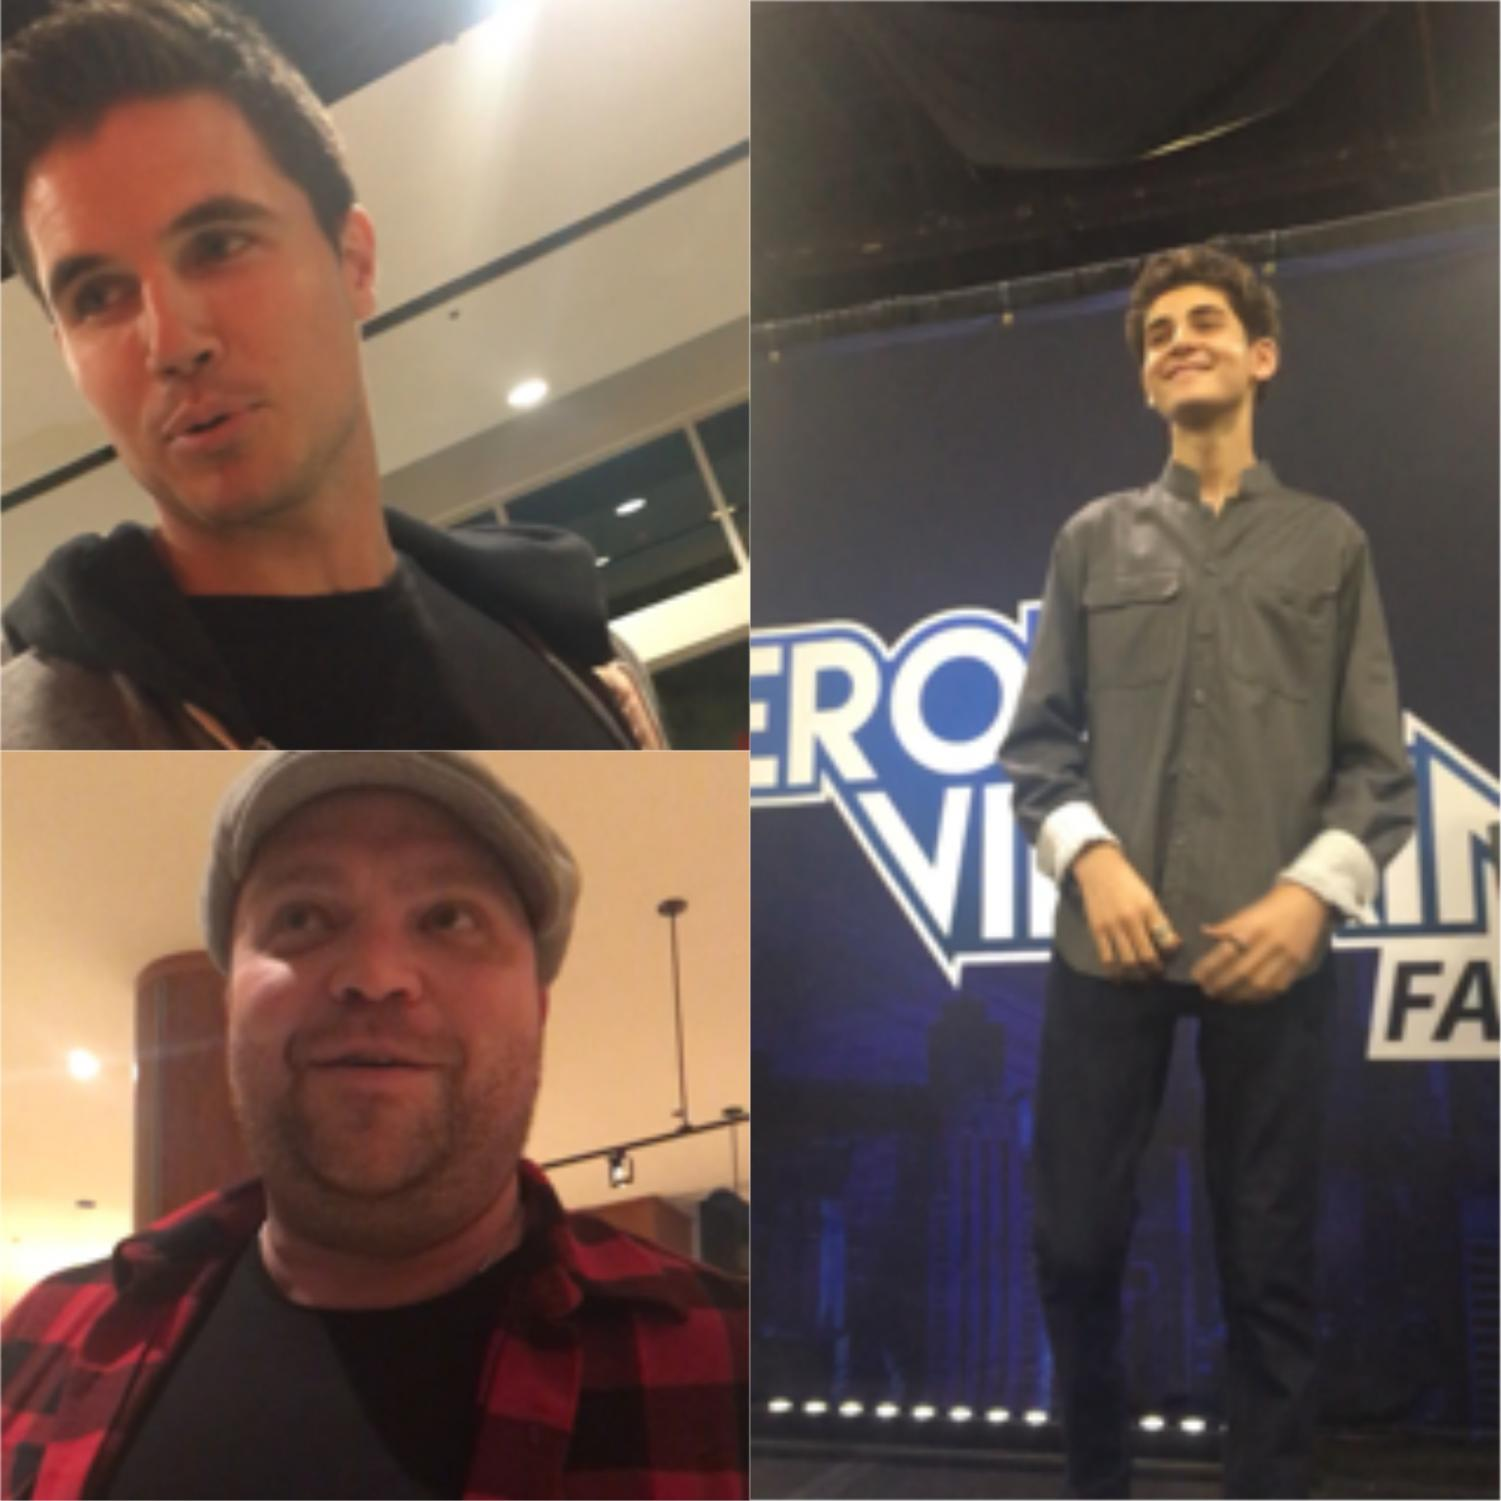 The image features the three DC actors quoted in the article. Top left: Robbie Amell. Bottom left: Drew Powell. Right: David Mazouz.